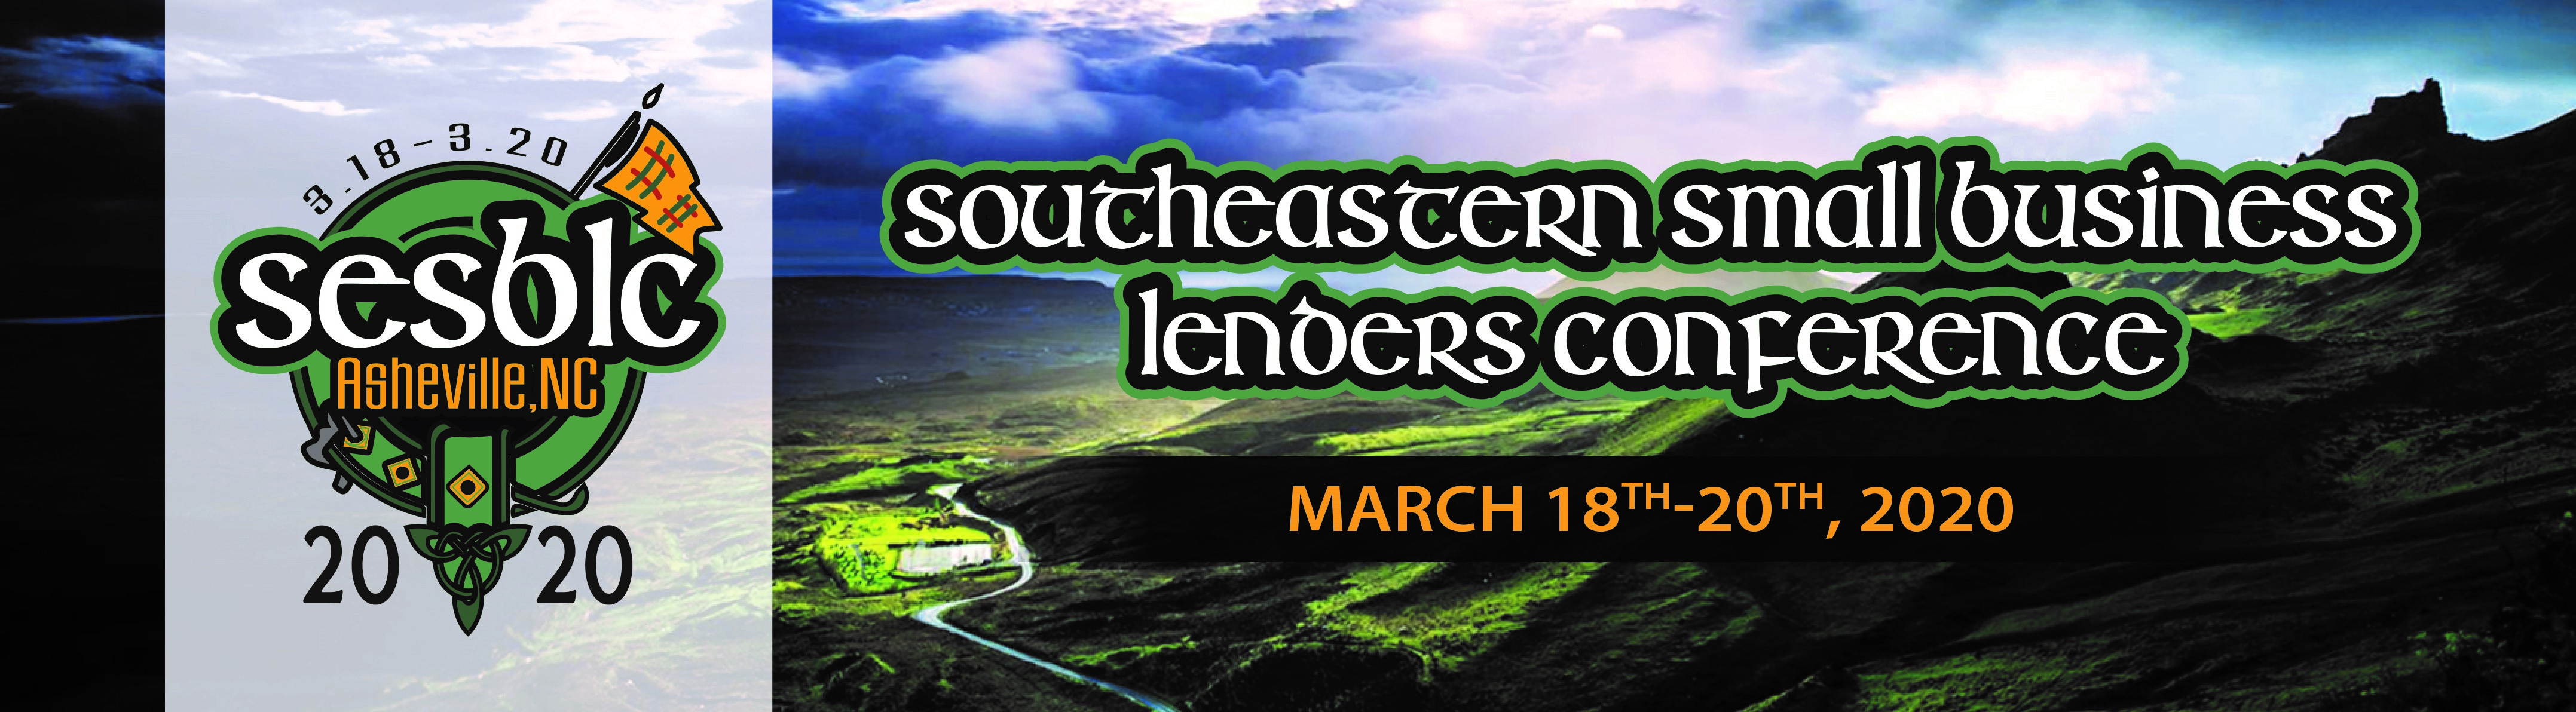 Southeastern Small Business Lenders Conference 2020